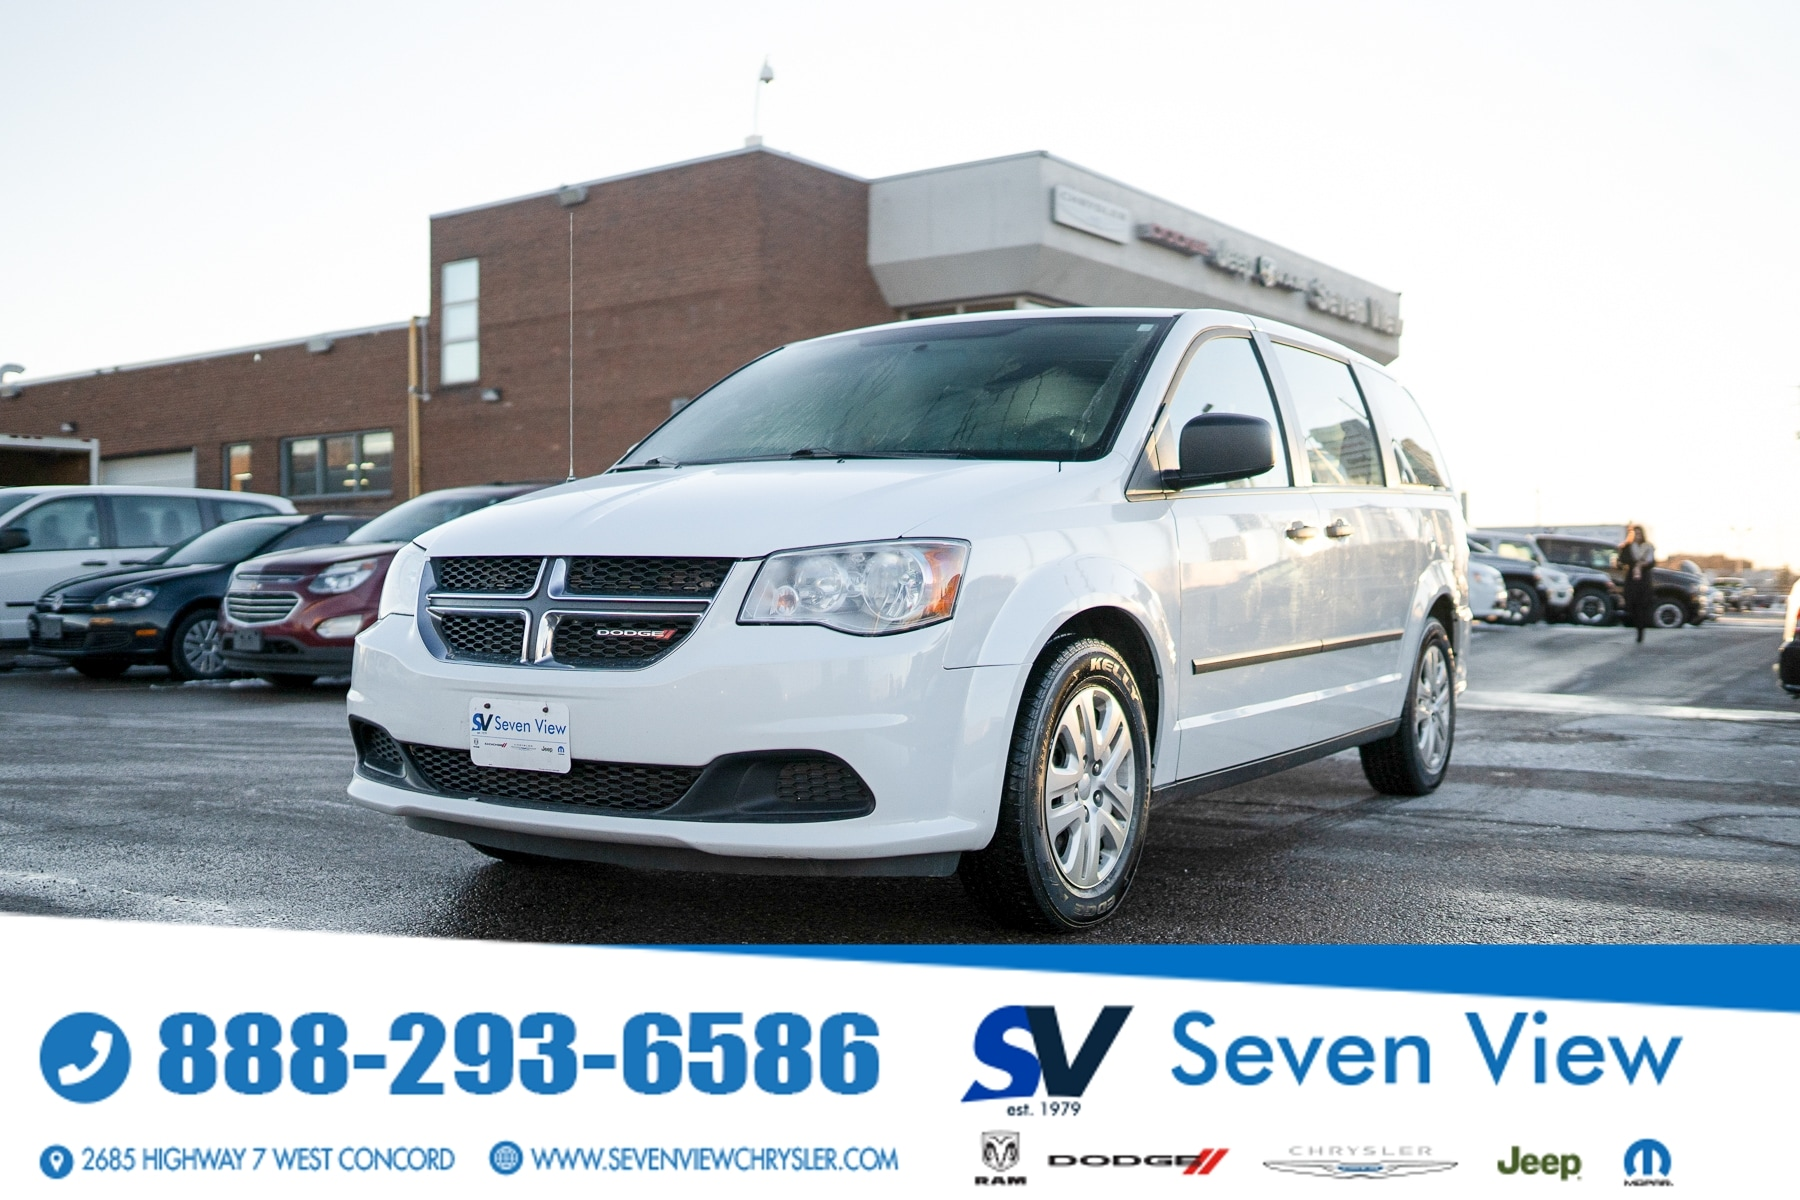 used 2017 Dodge Grand Caravan car, priced at $11,577